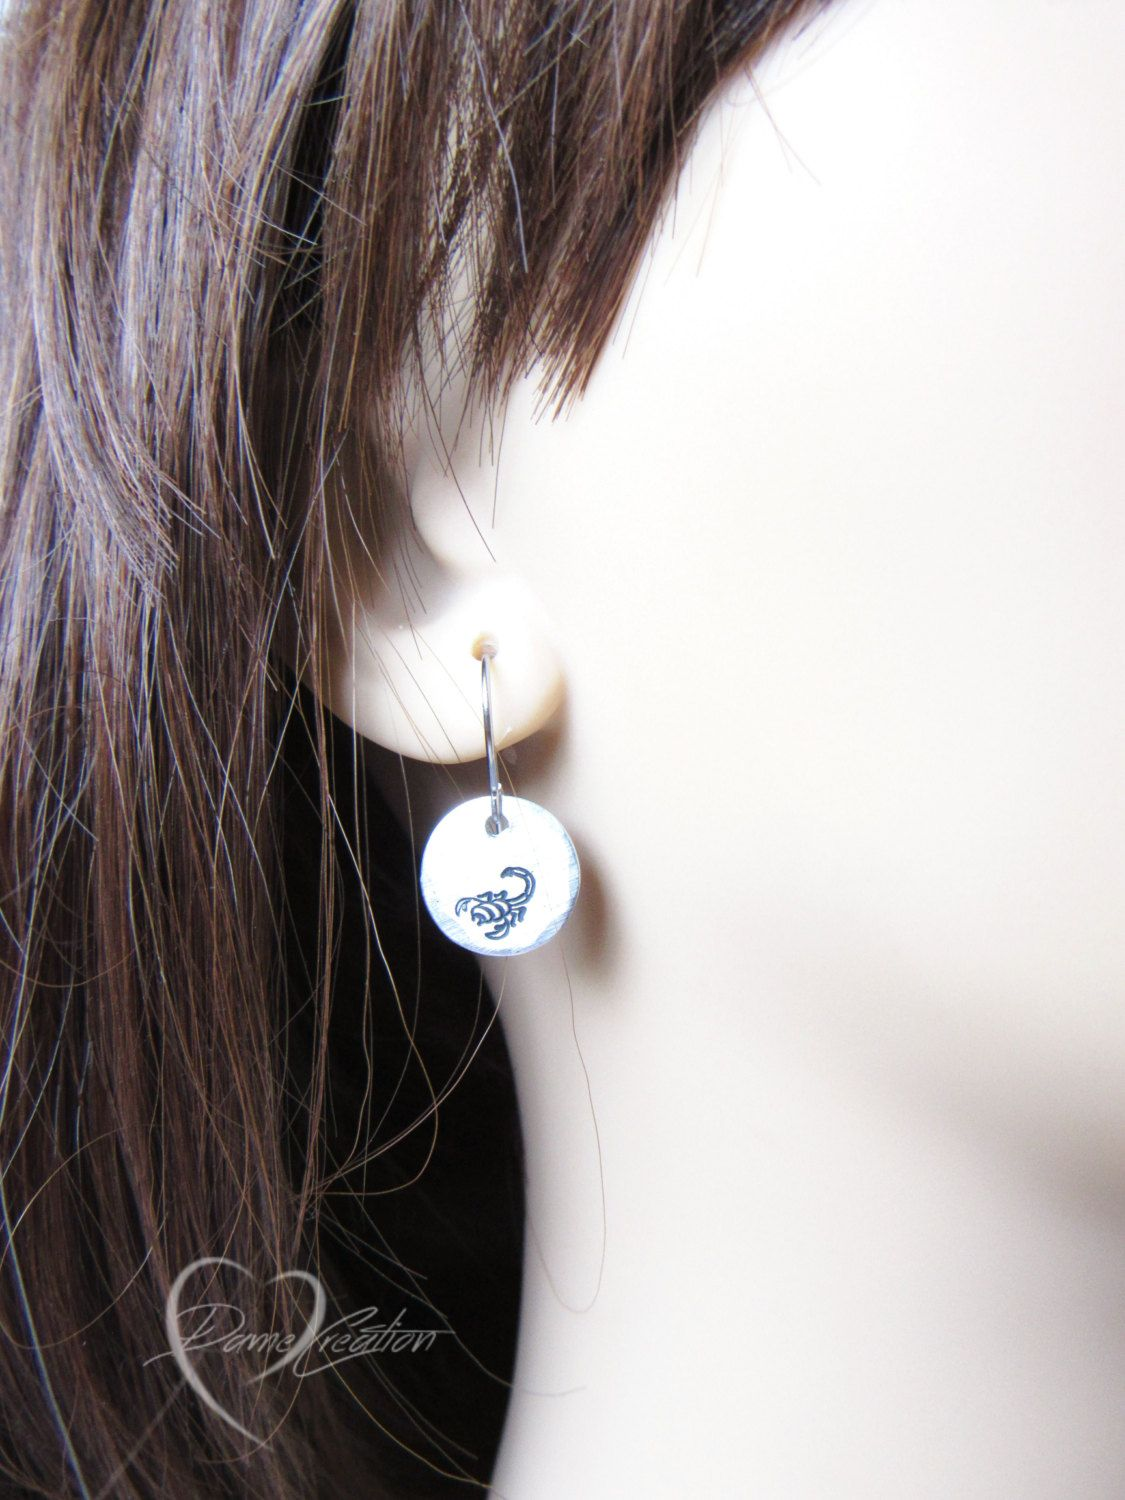 drop il antuque p anniversity wear vintage casual fullxfull everyday earrings dangle simple